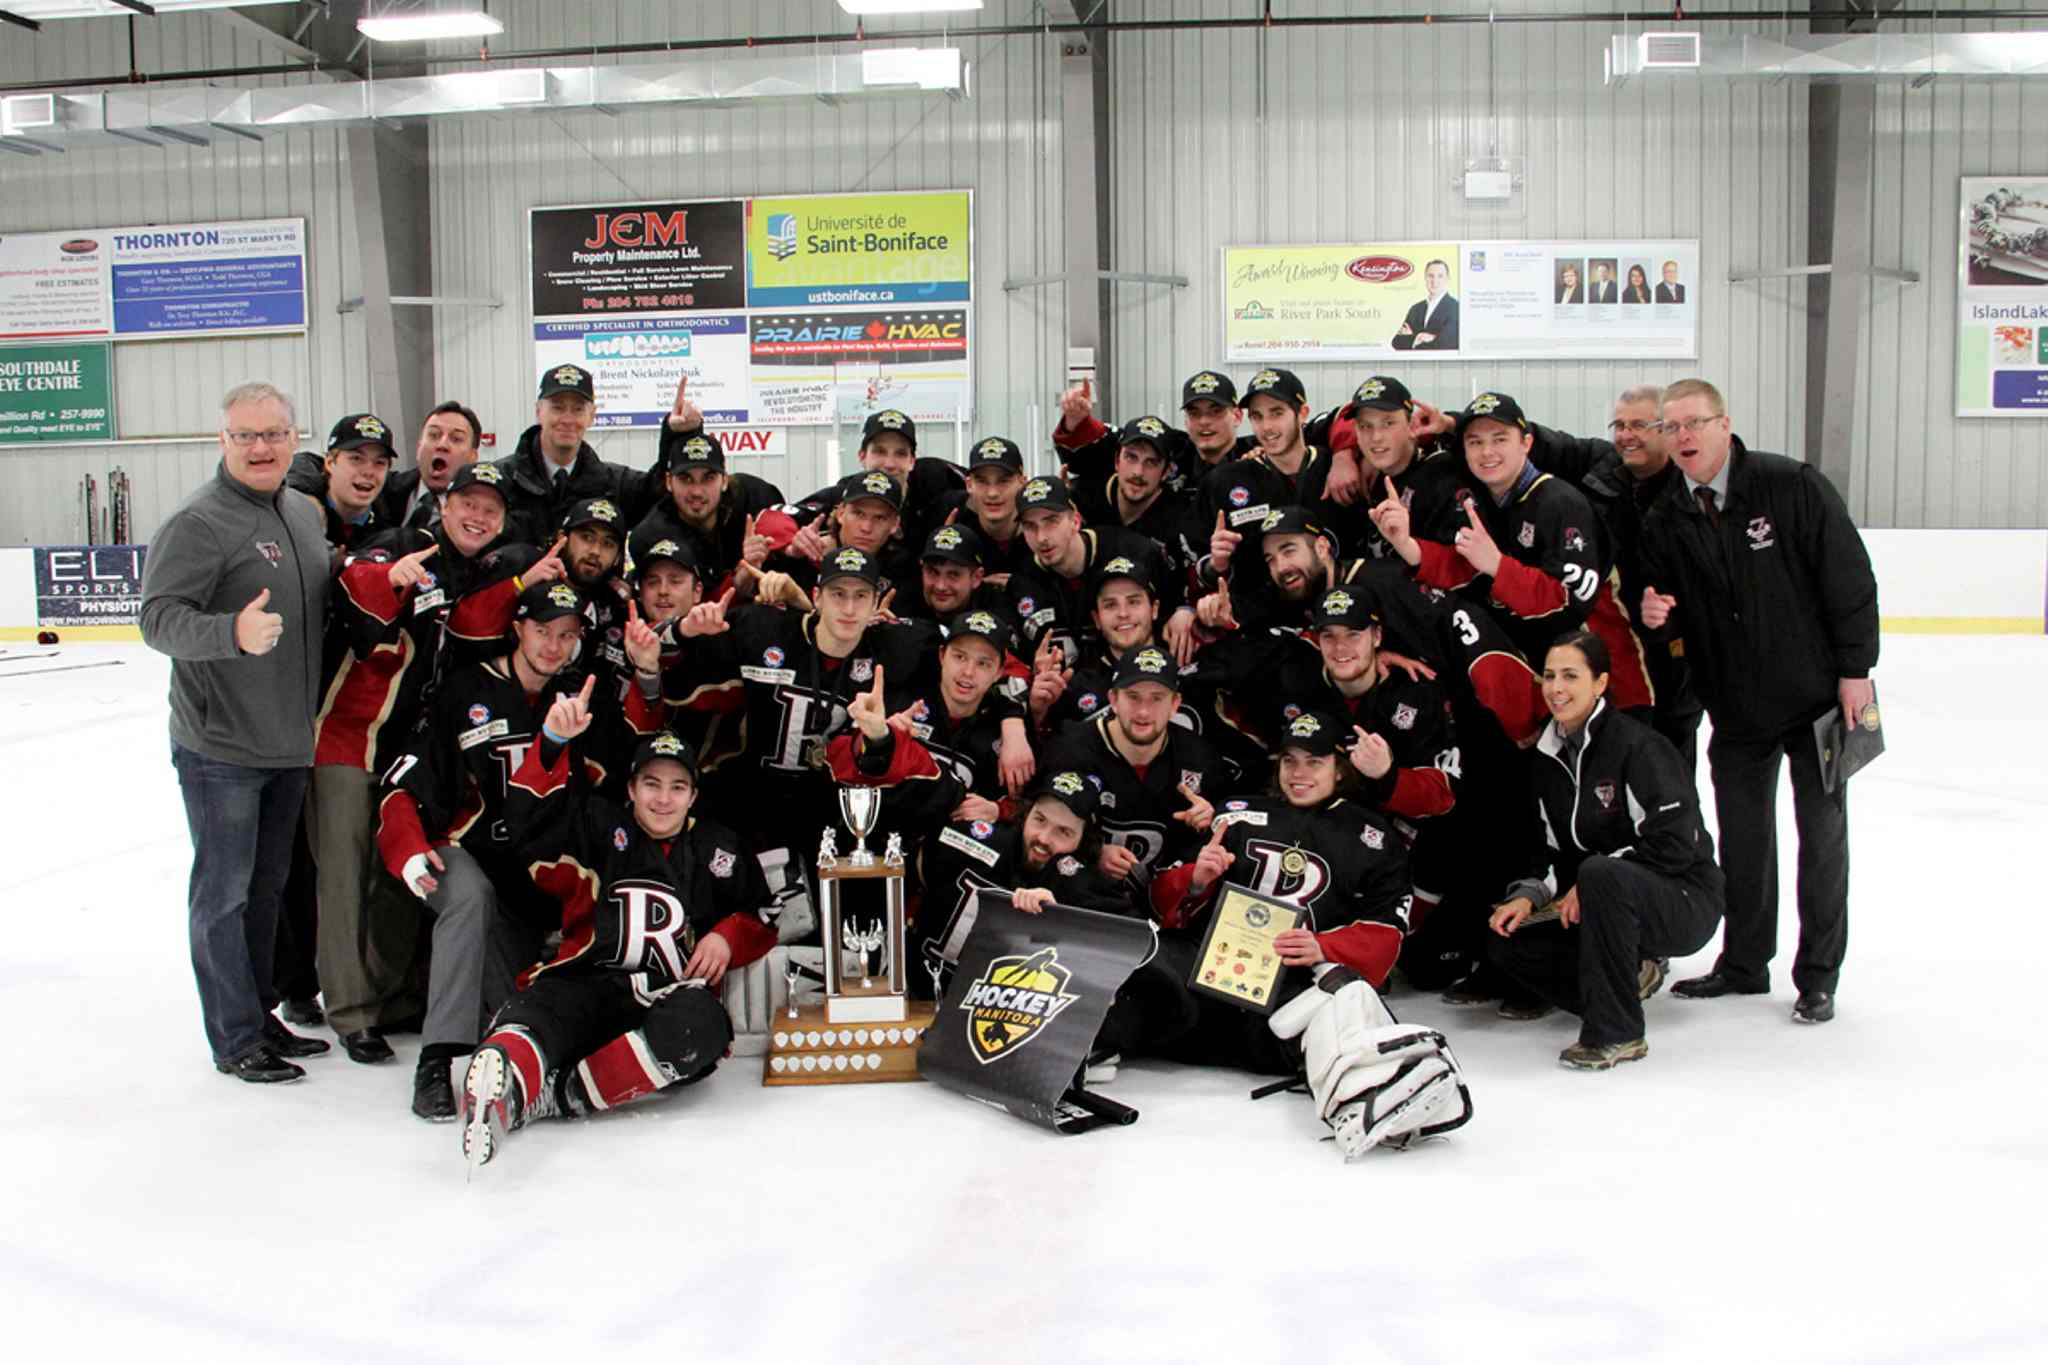 The Raiders Jr. Hockey Club captured the Manitoba Major Junior Hockey League championship with 4-1 series win over the St. Boniface Riels on Sat., April 12.